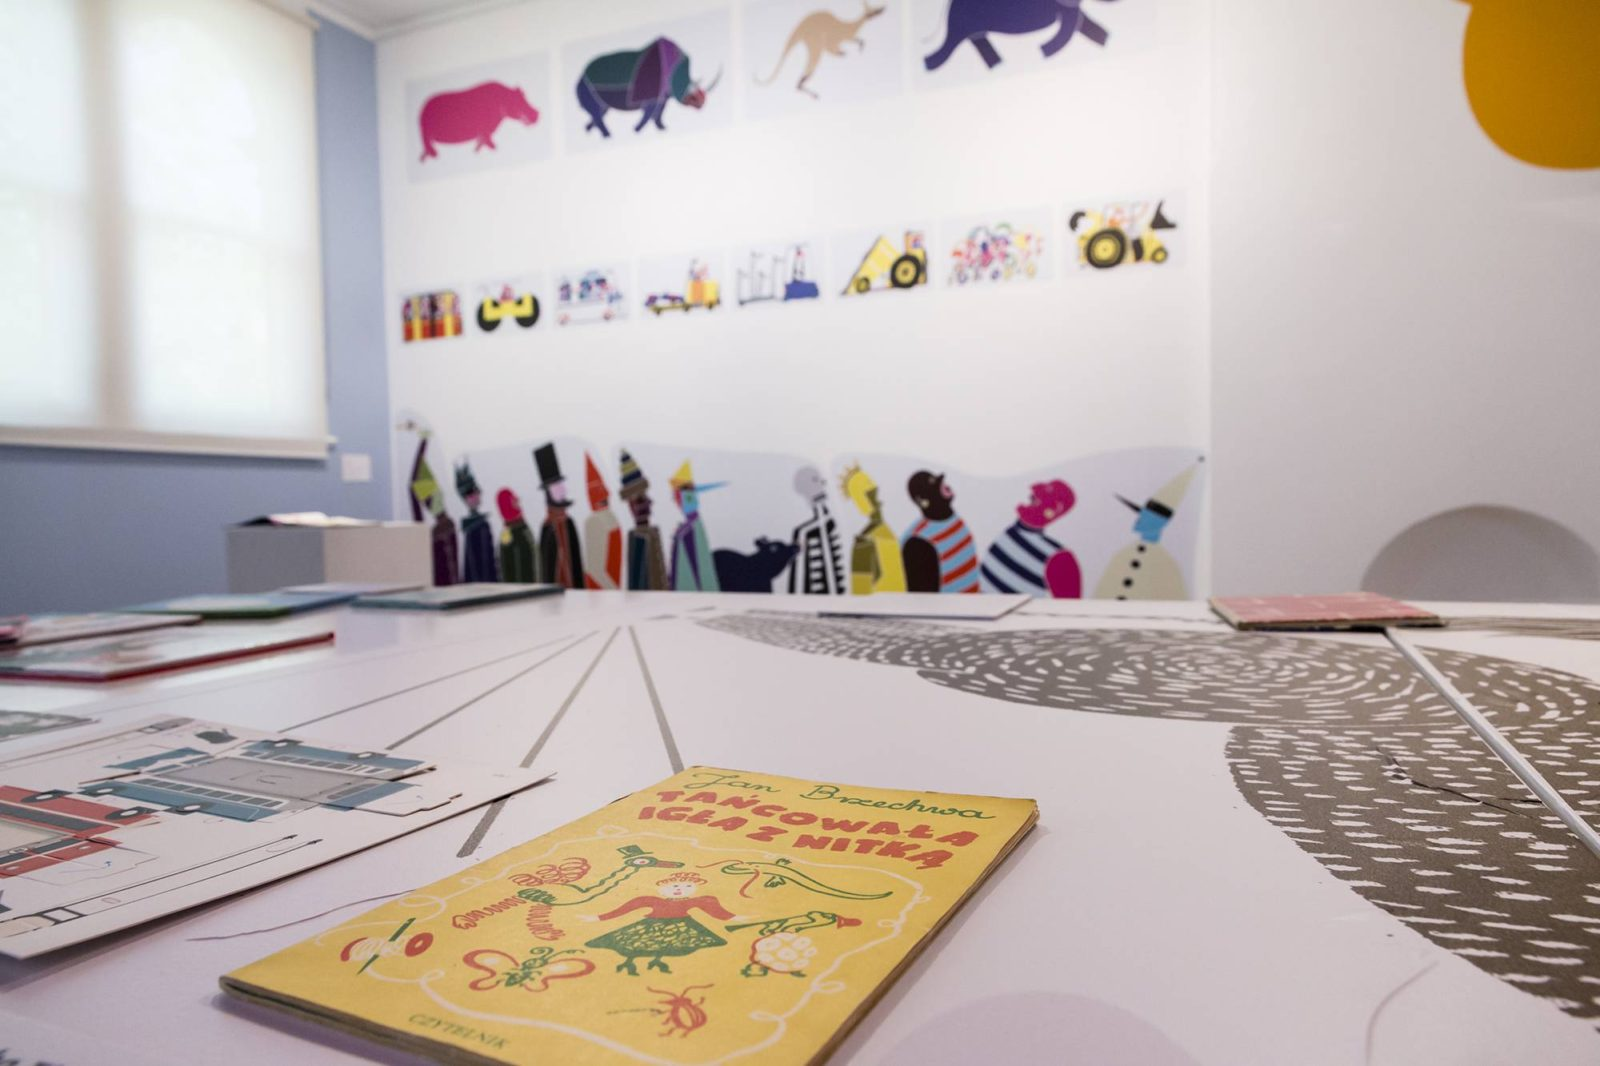 Illustrated Children's and Picture Books of Poland, Murray Art Museum Albury, Australia 2017